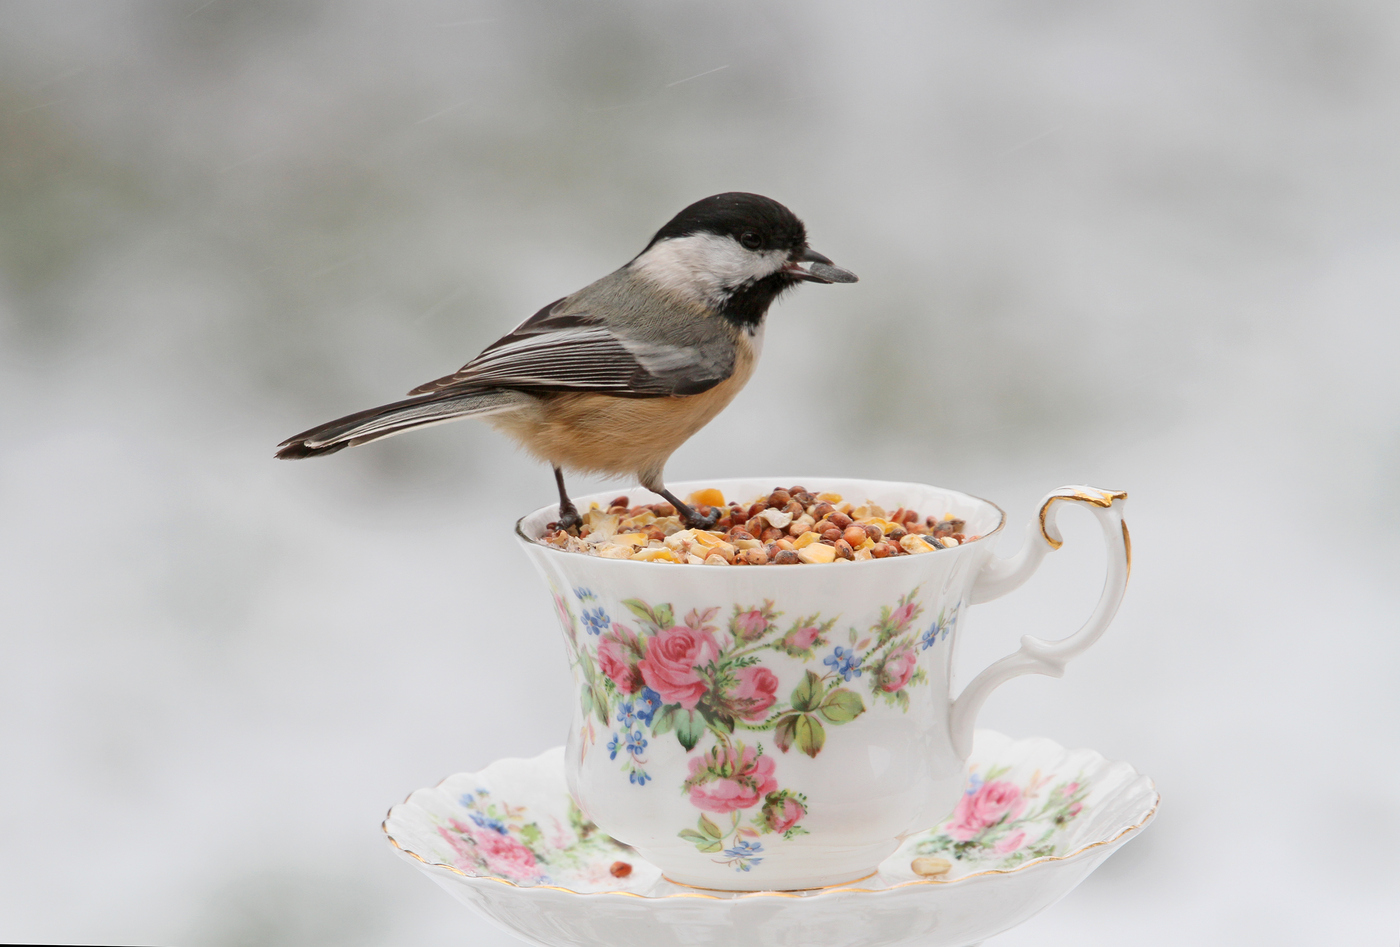 Chickadee at the Teacup #19